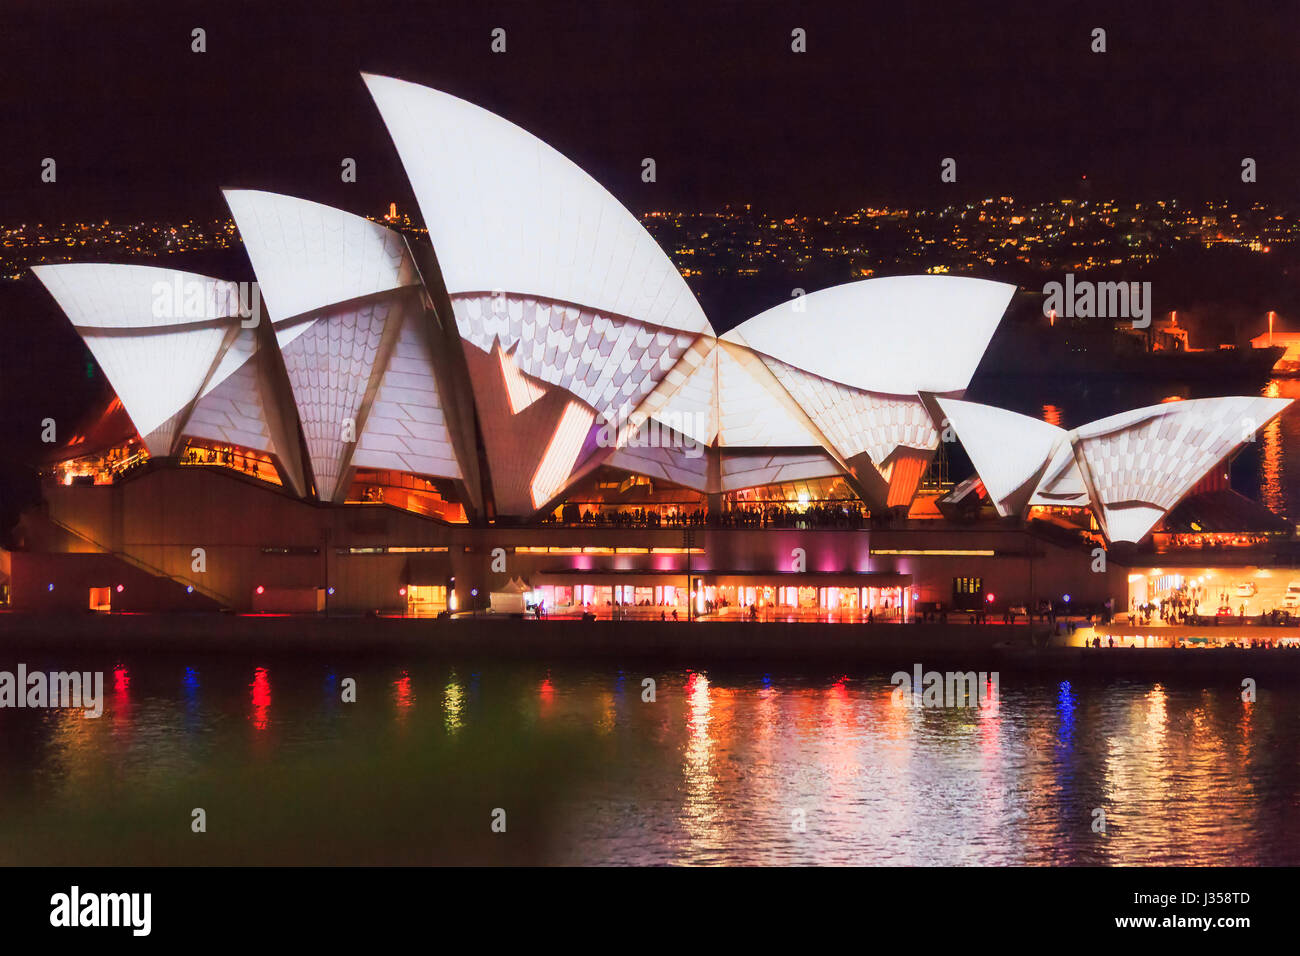 Sydney, Australia - 30 May 2012: Vivid Sydney light show and festival with artistic projection on famous Sydney - Stock Image